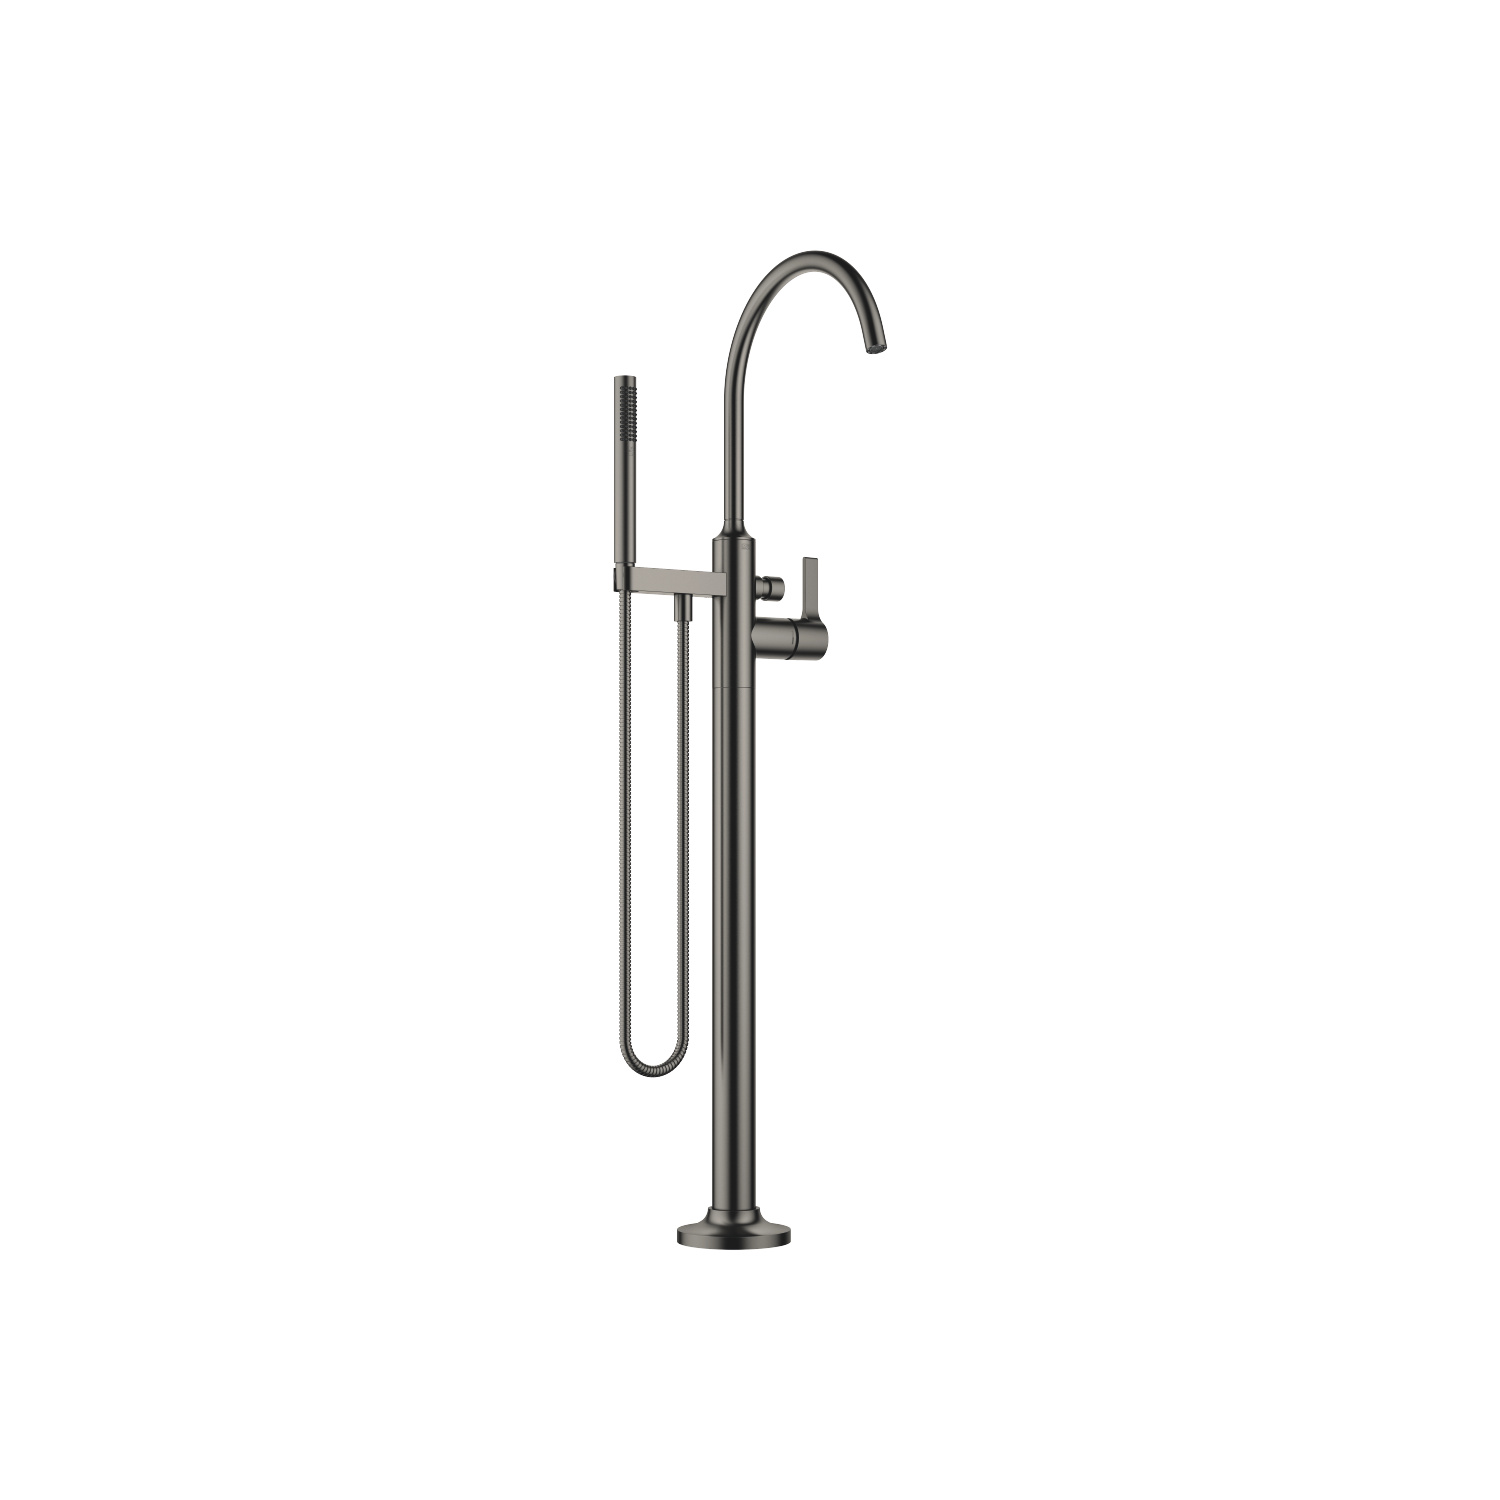 Single-lever bath mixer with stand pipe for free-standing assembly with hand shower set - Dark Platinum matt - 25 863 809-99